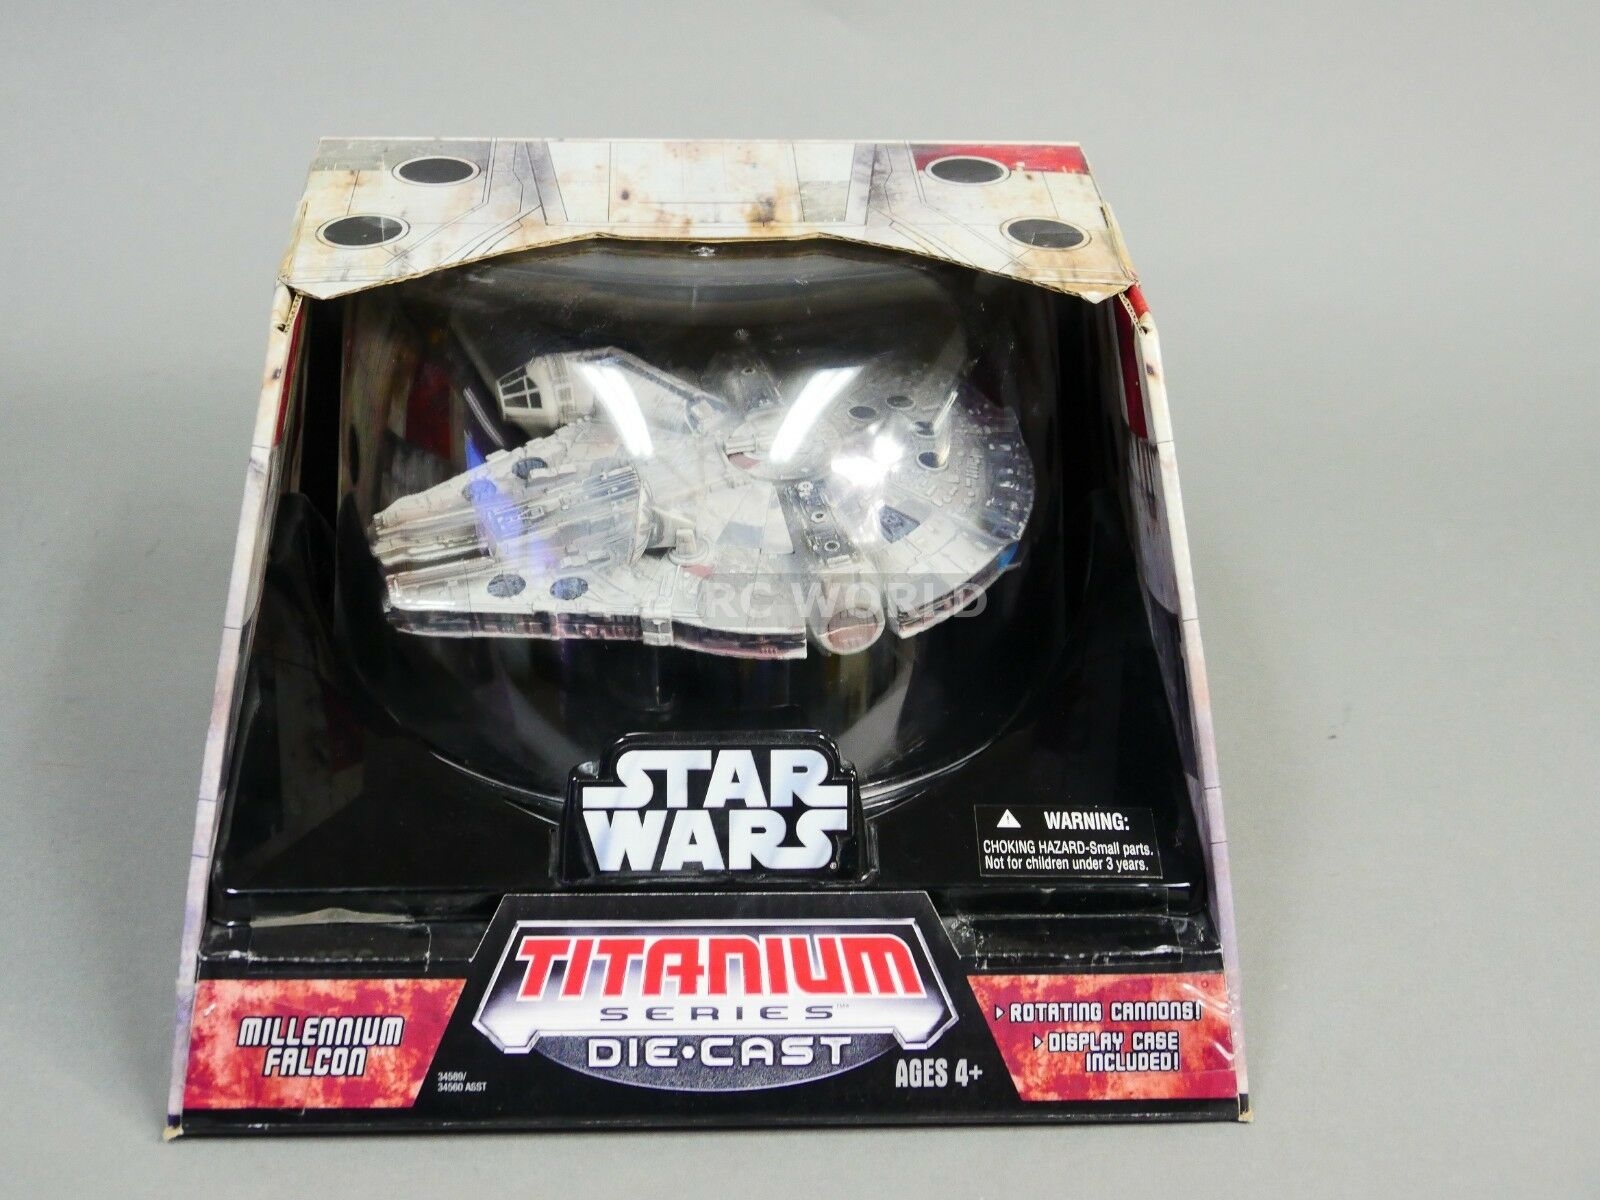 Star Wars Titanium Series MILLENNIUM FALCON Die-Cast Model  ob1